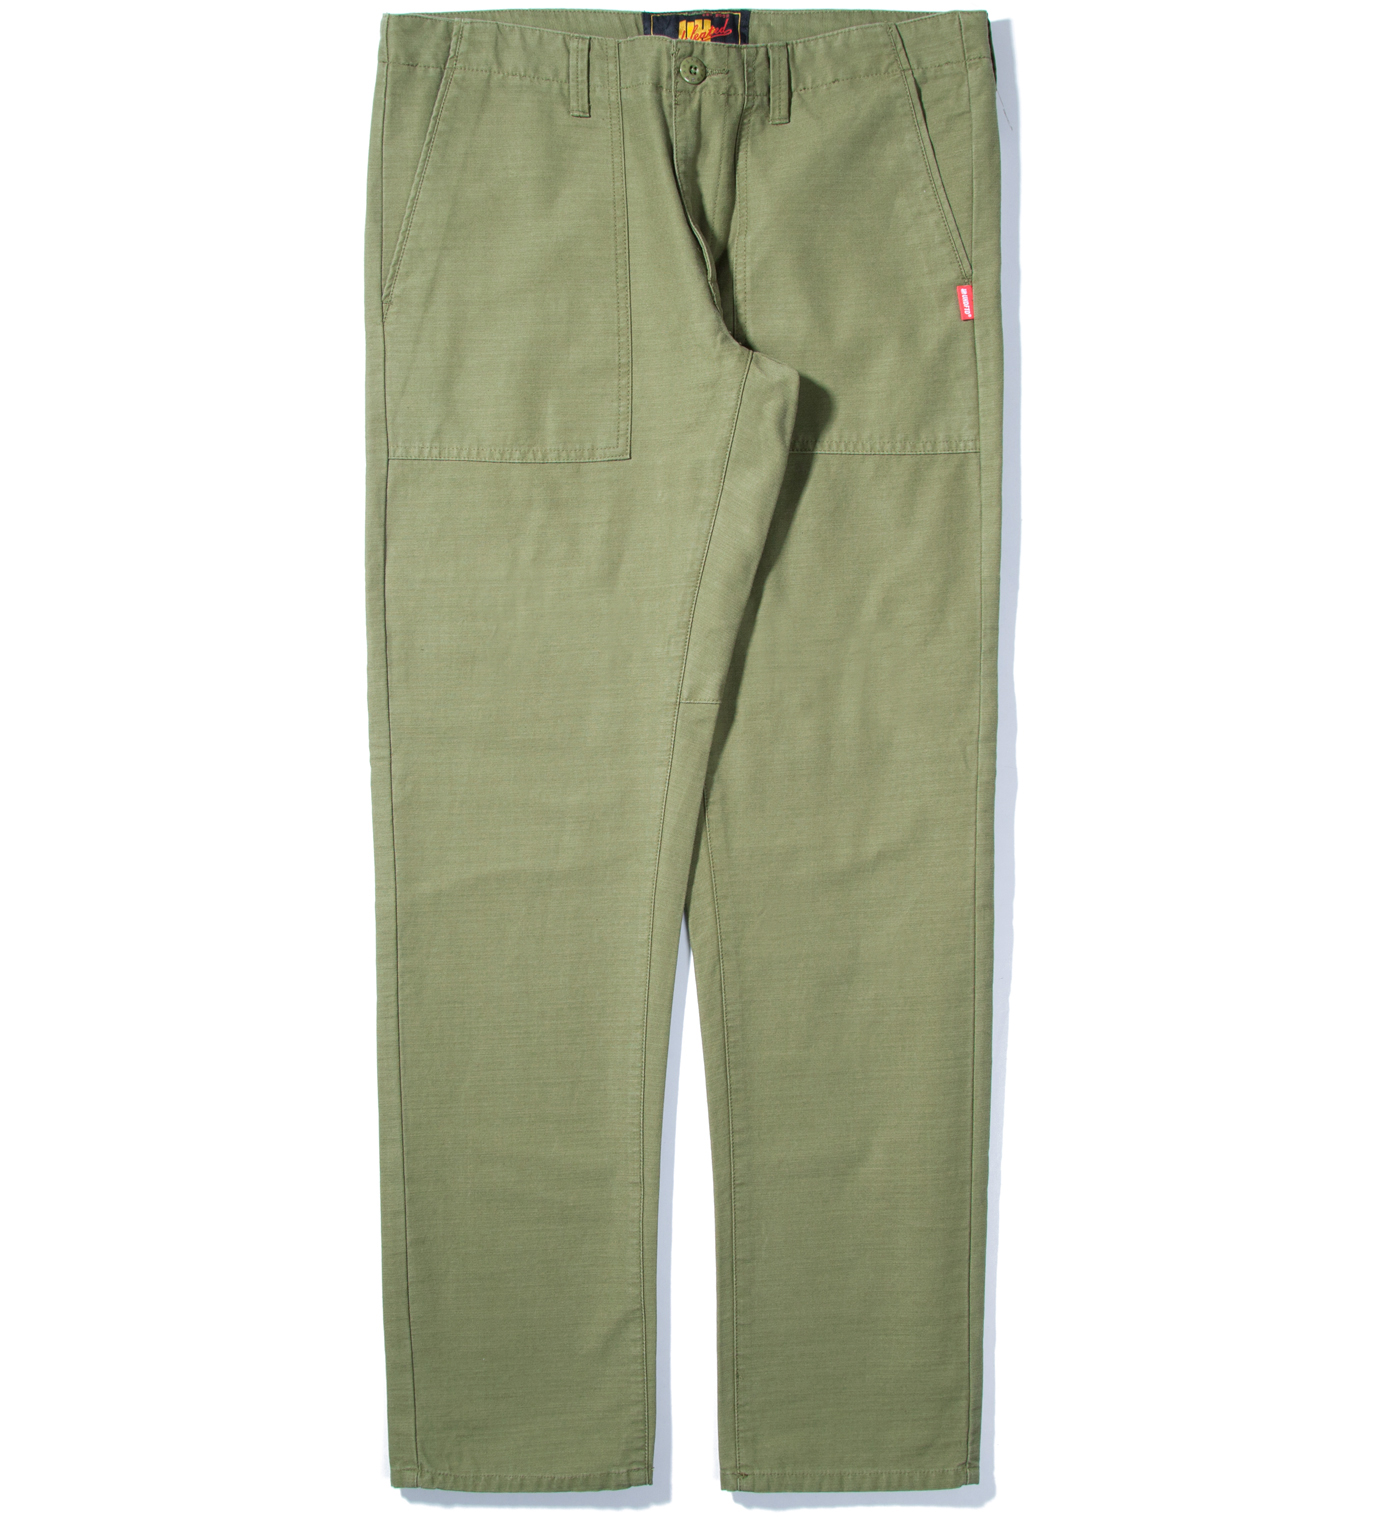 UNDEFEATED Olive Recon Chino Pant